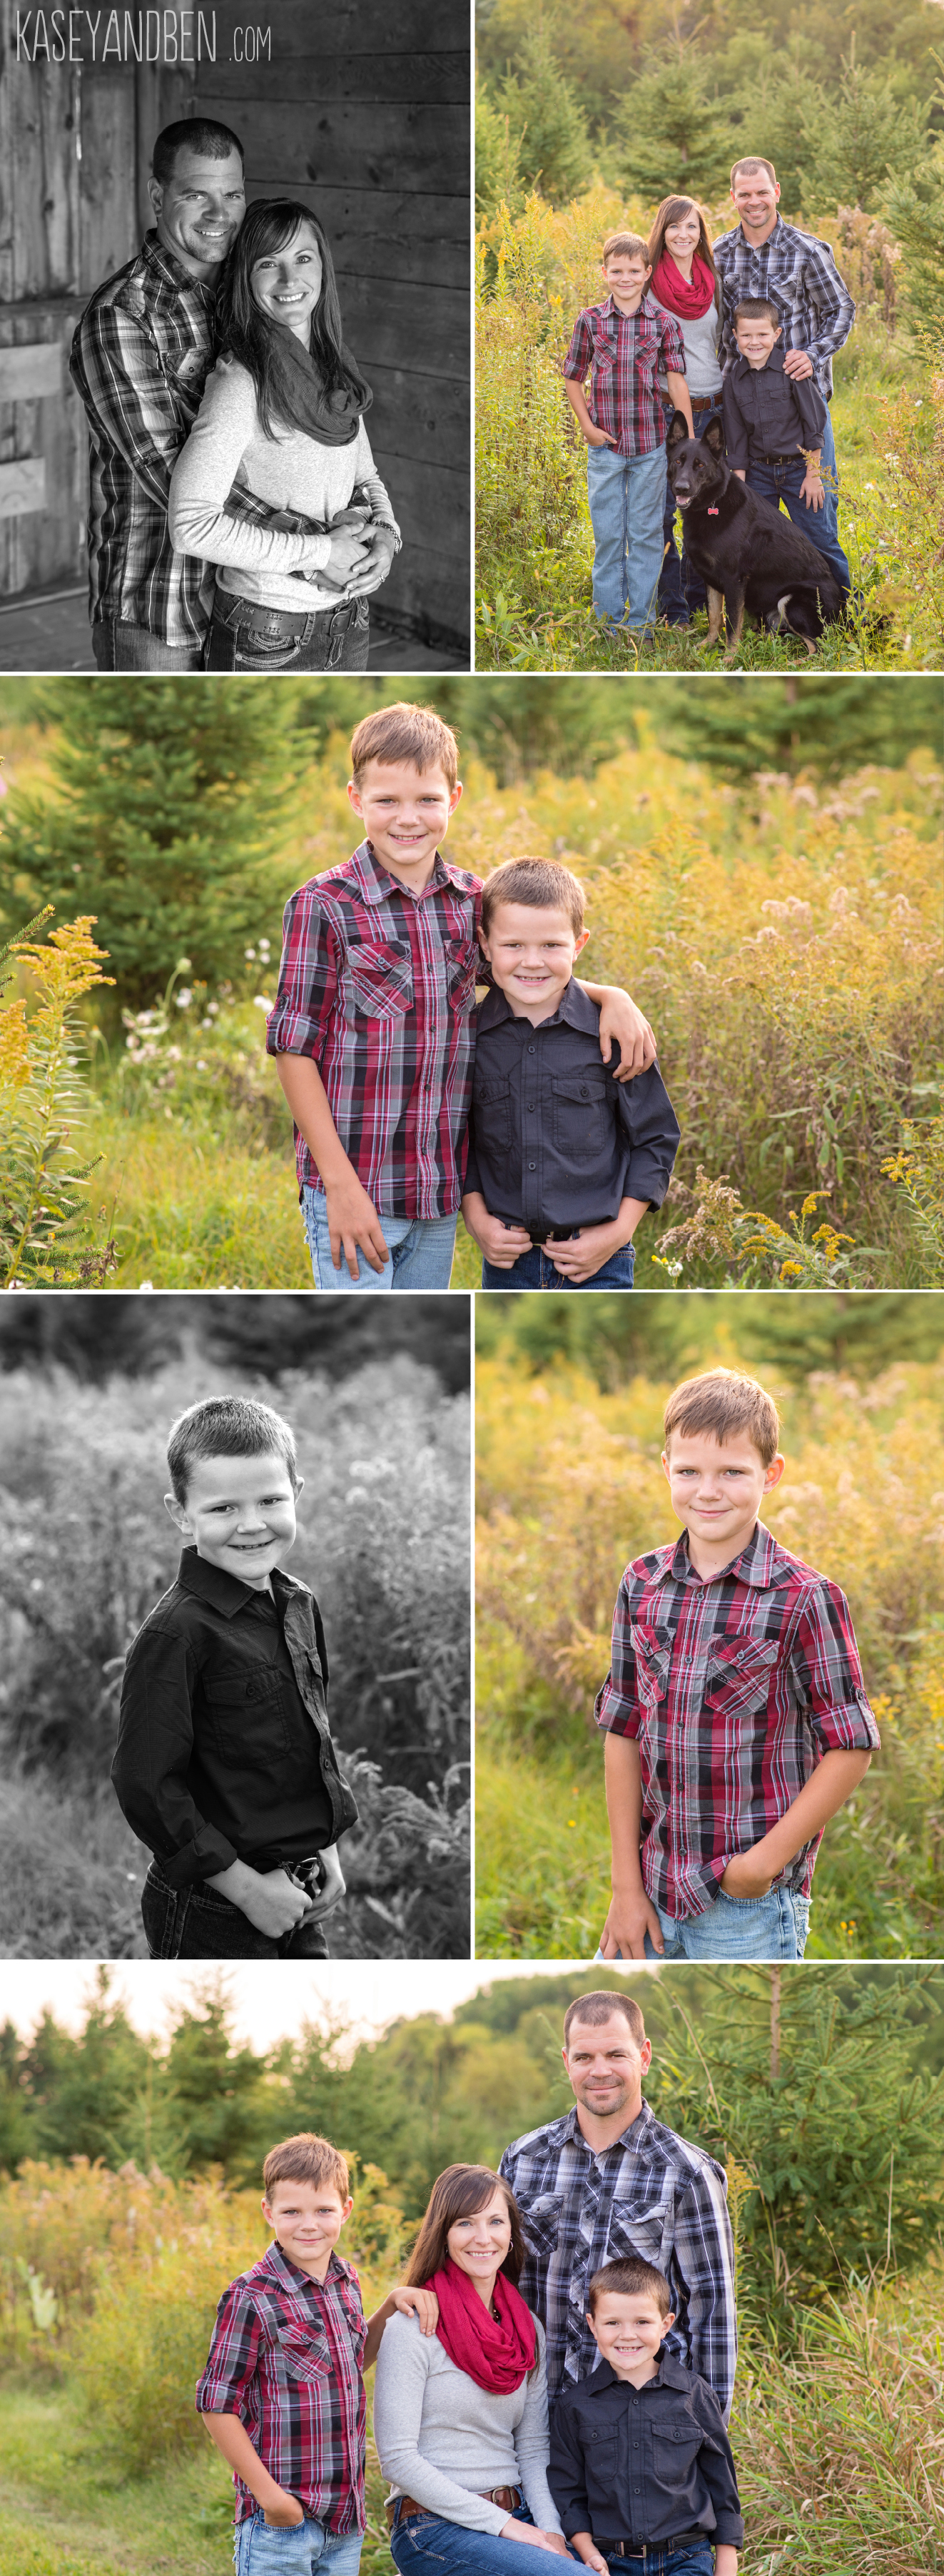 Seymour-Green-Bay-Family-Photography-Farm-Photographer-Rustic-Country-Barn-Children